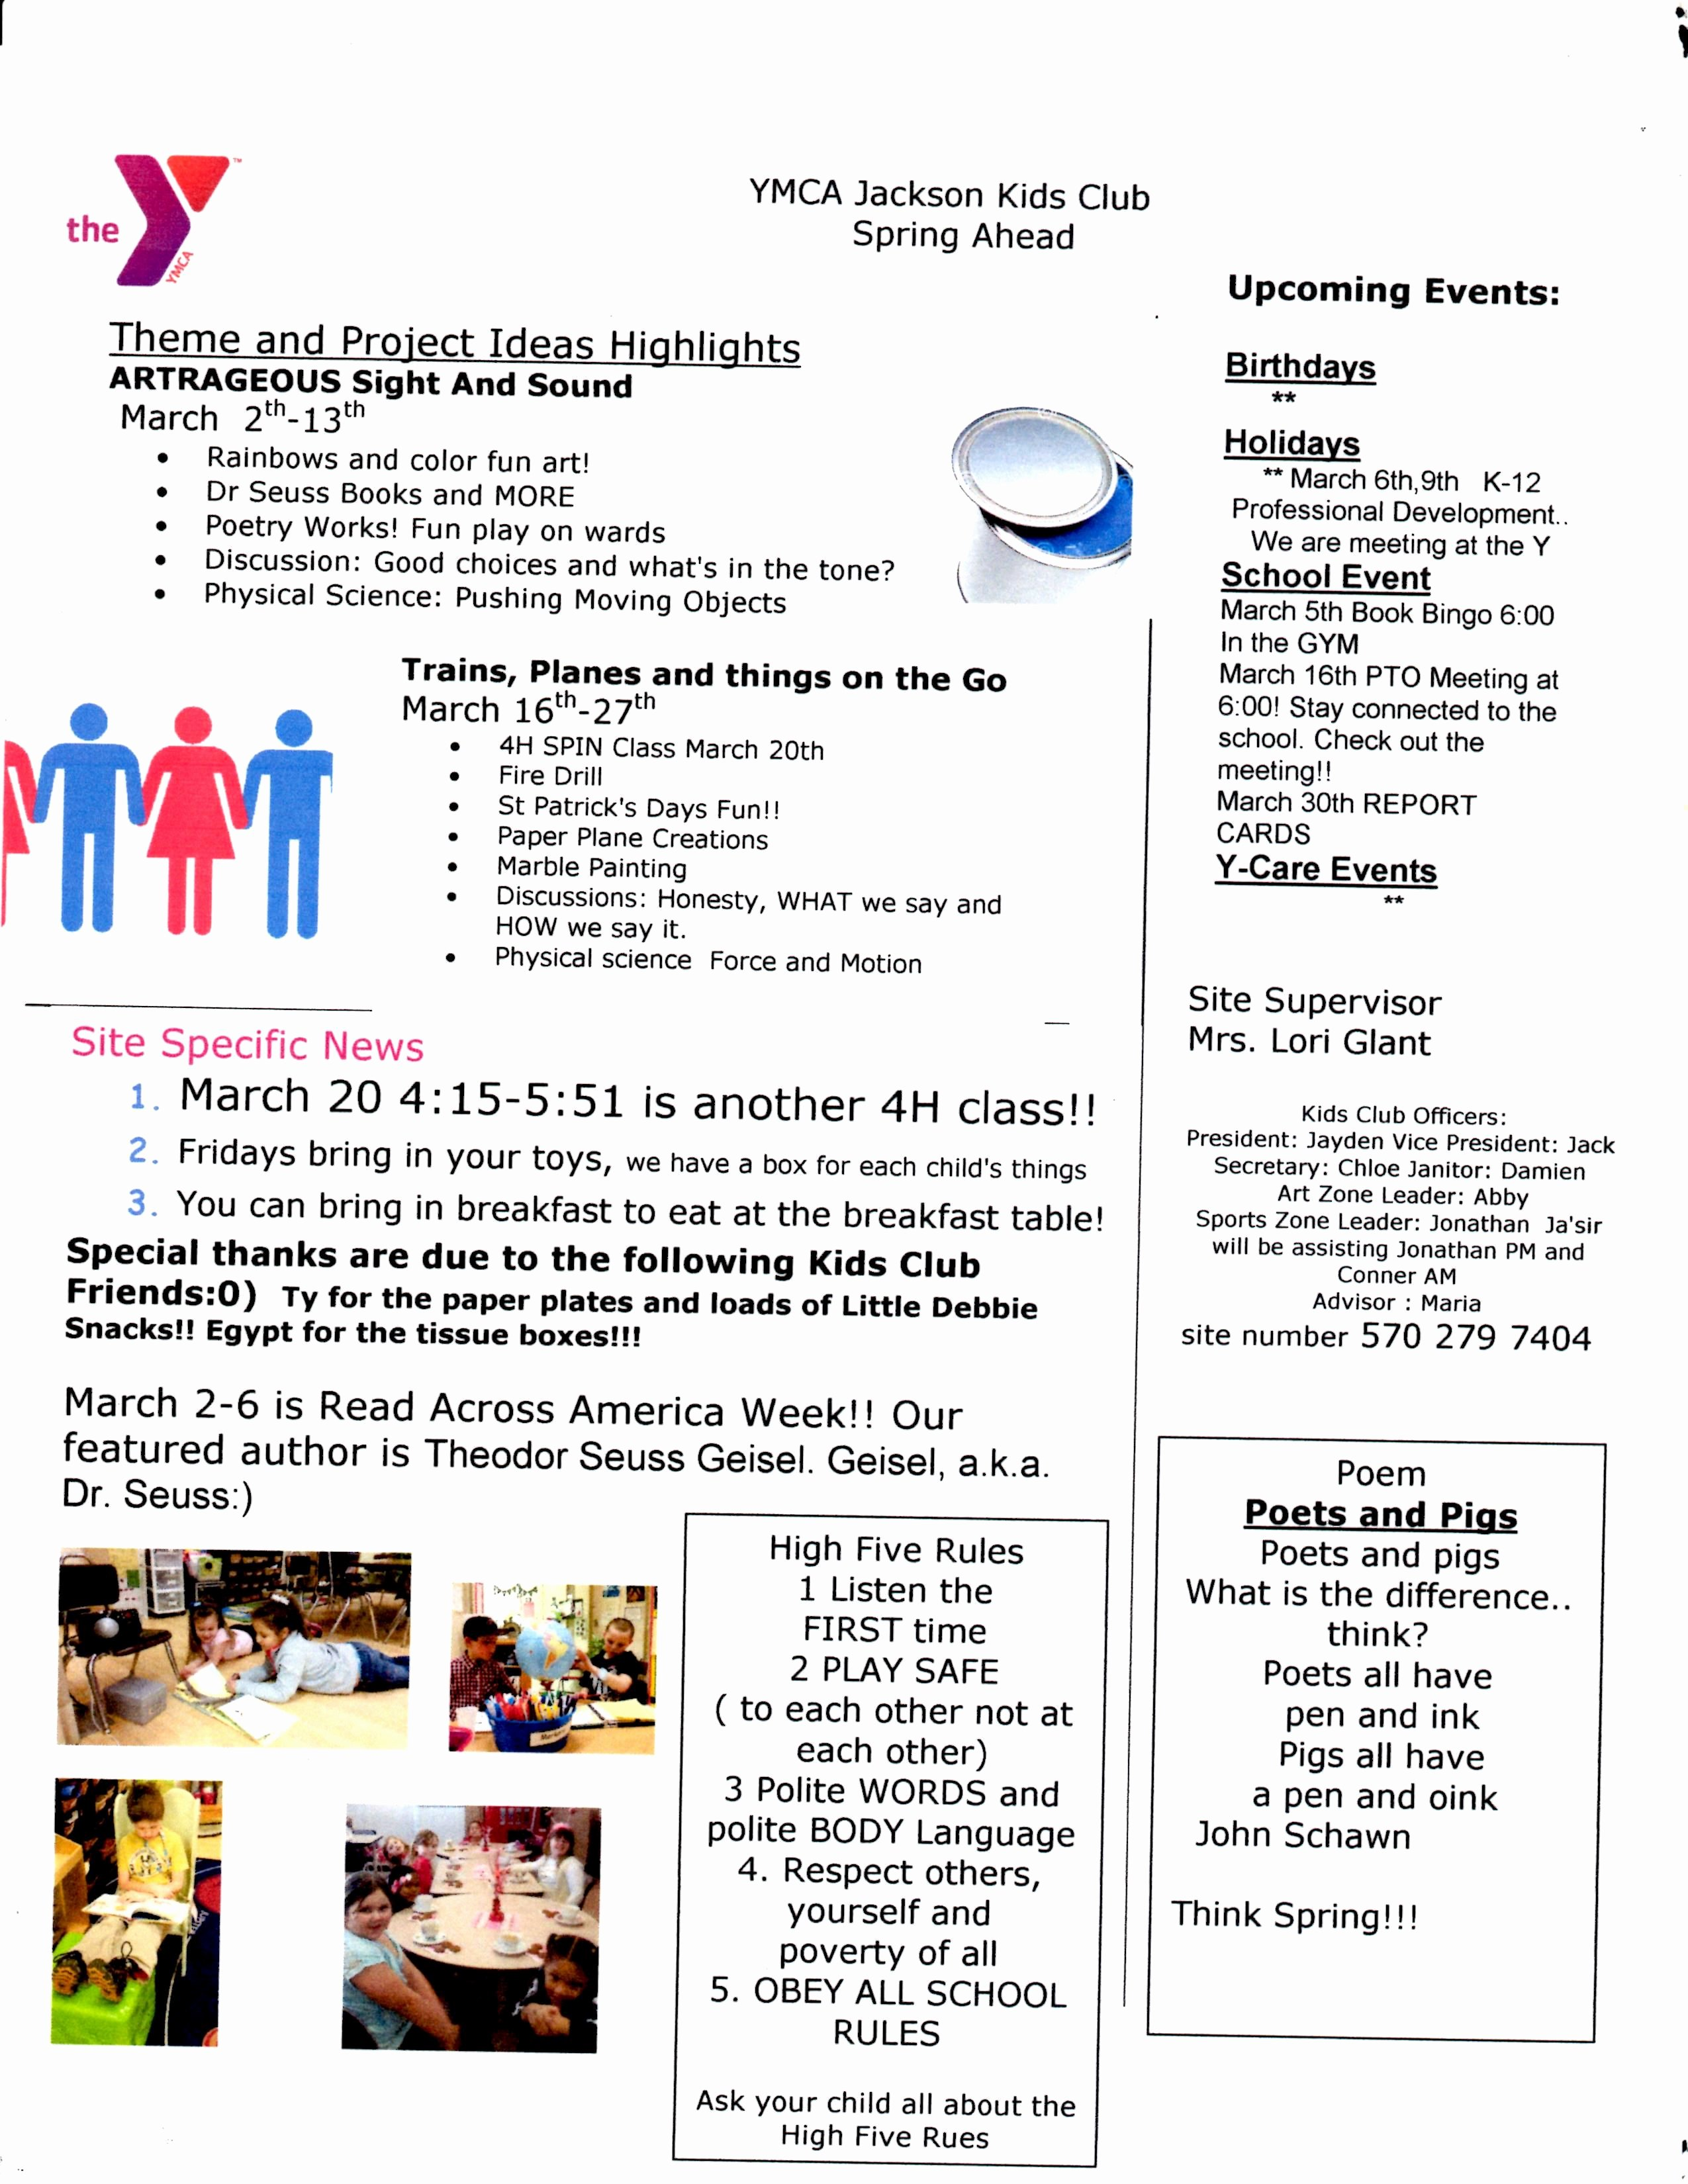 Newsletter Examples for Students Awesome Sample Of My Newsletter for the Kids Club the Ymca School